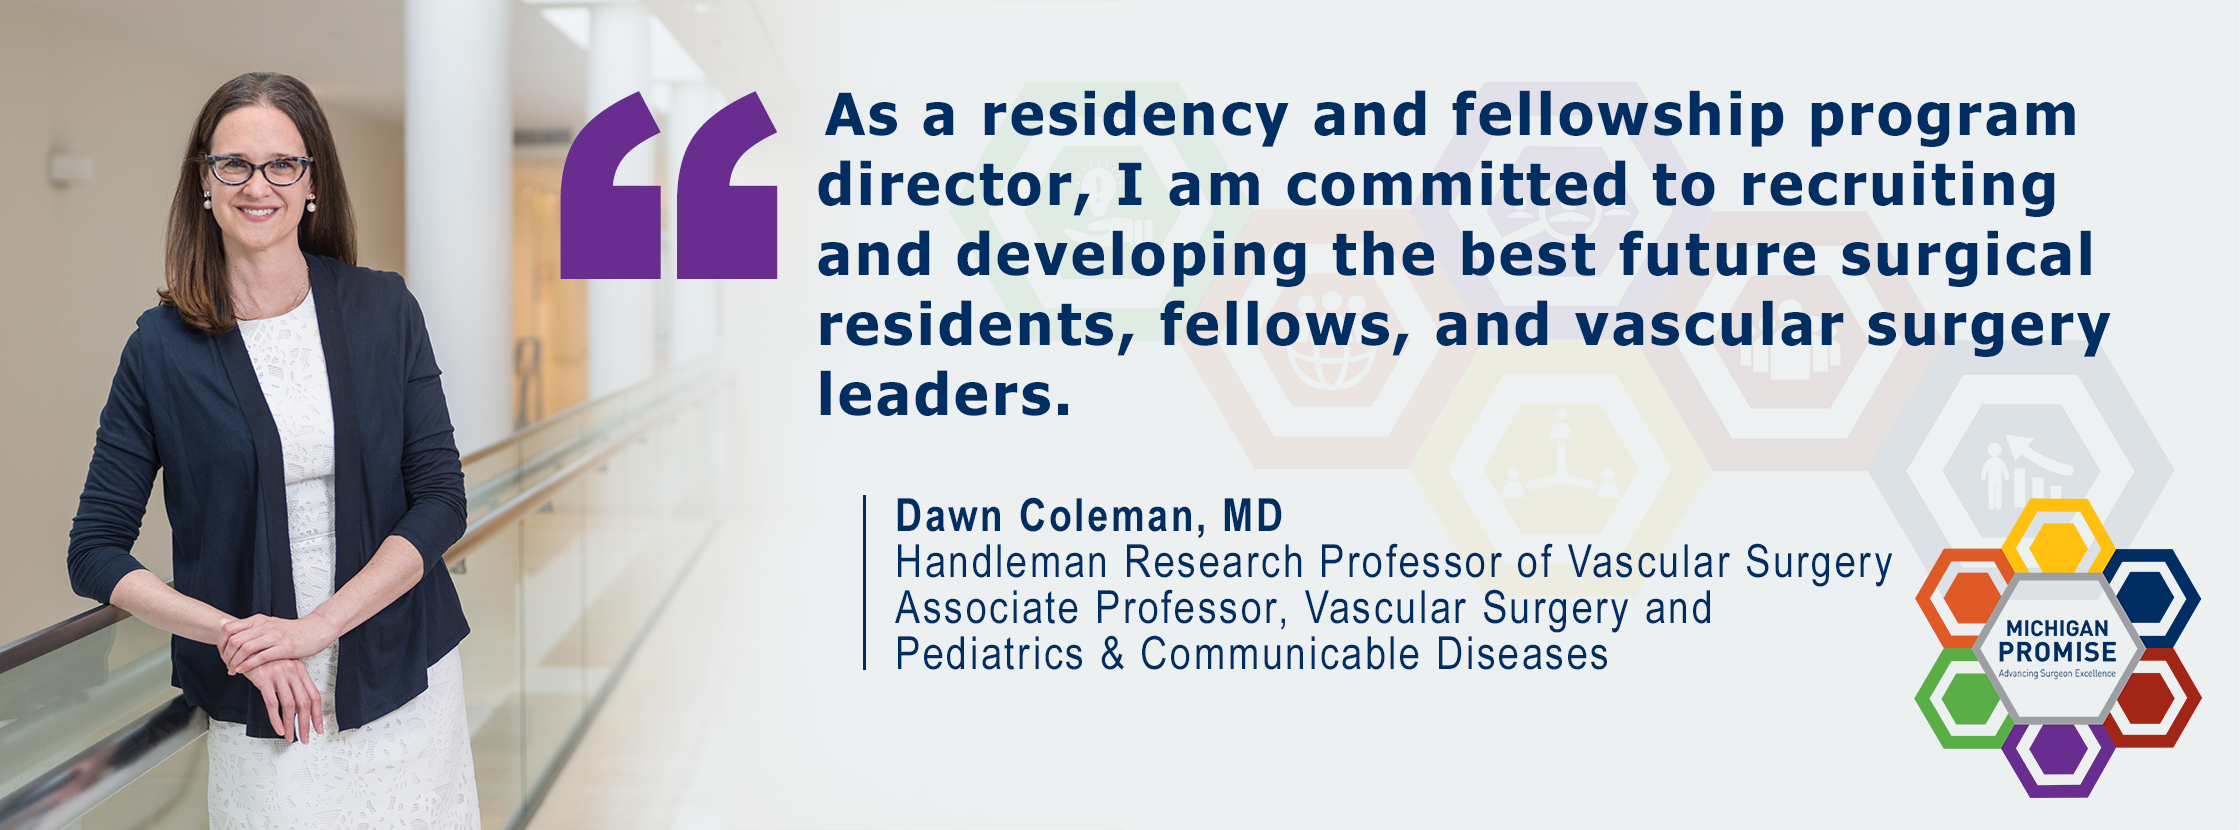 """As a residency and fellowship program director, I am committed to recruiting and developing the best future surgical residents, fellows, and vascular surgery leaders."" Dawn Coleman, MD"